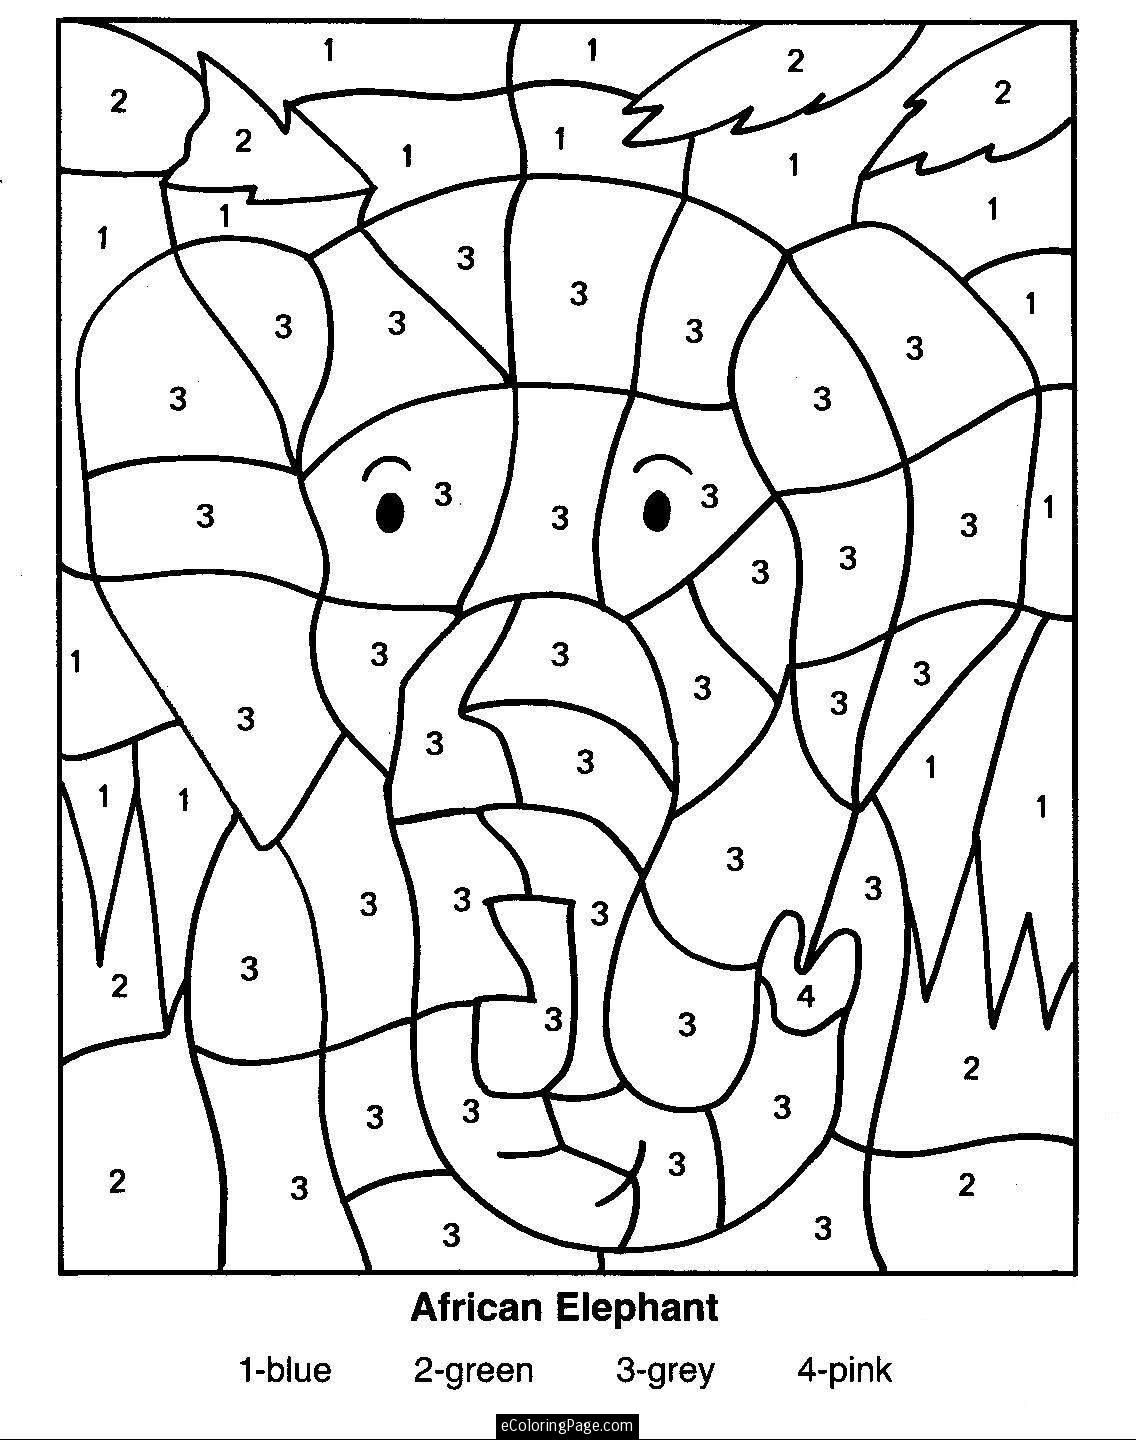 Free printable coloring pages with words - Color By Numbers Elephant Coloring Pages For Kids Free Printable